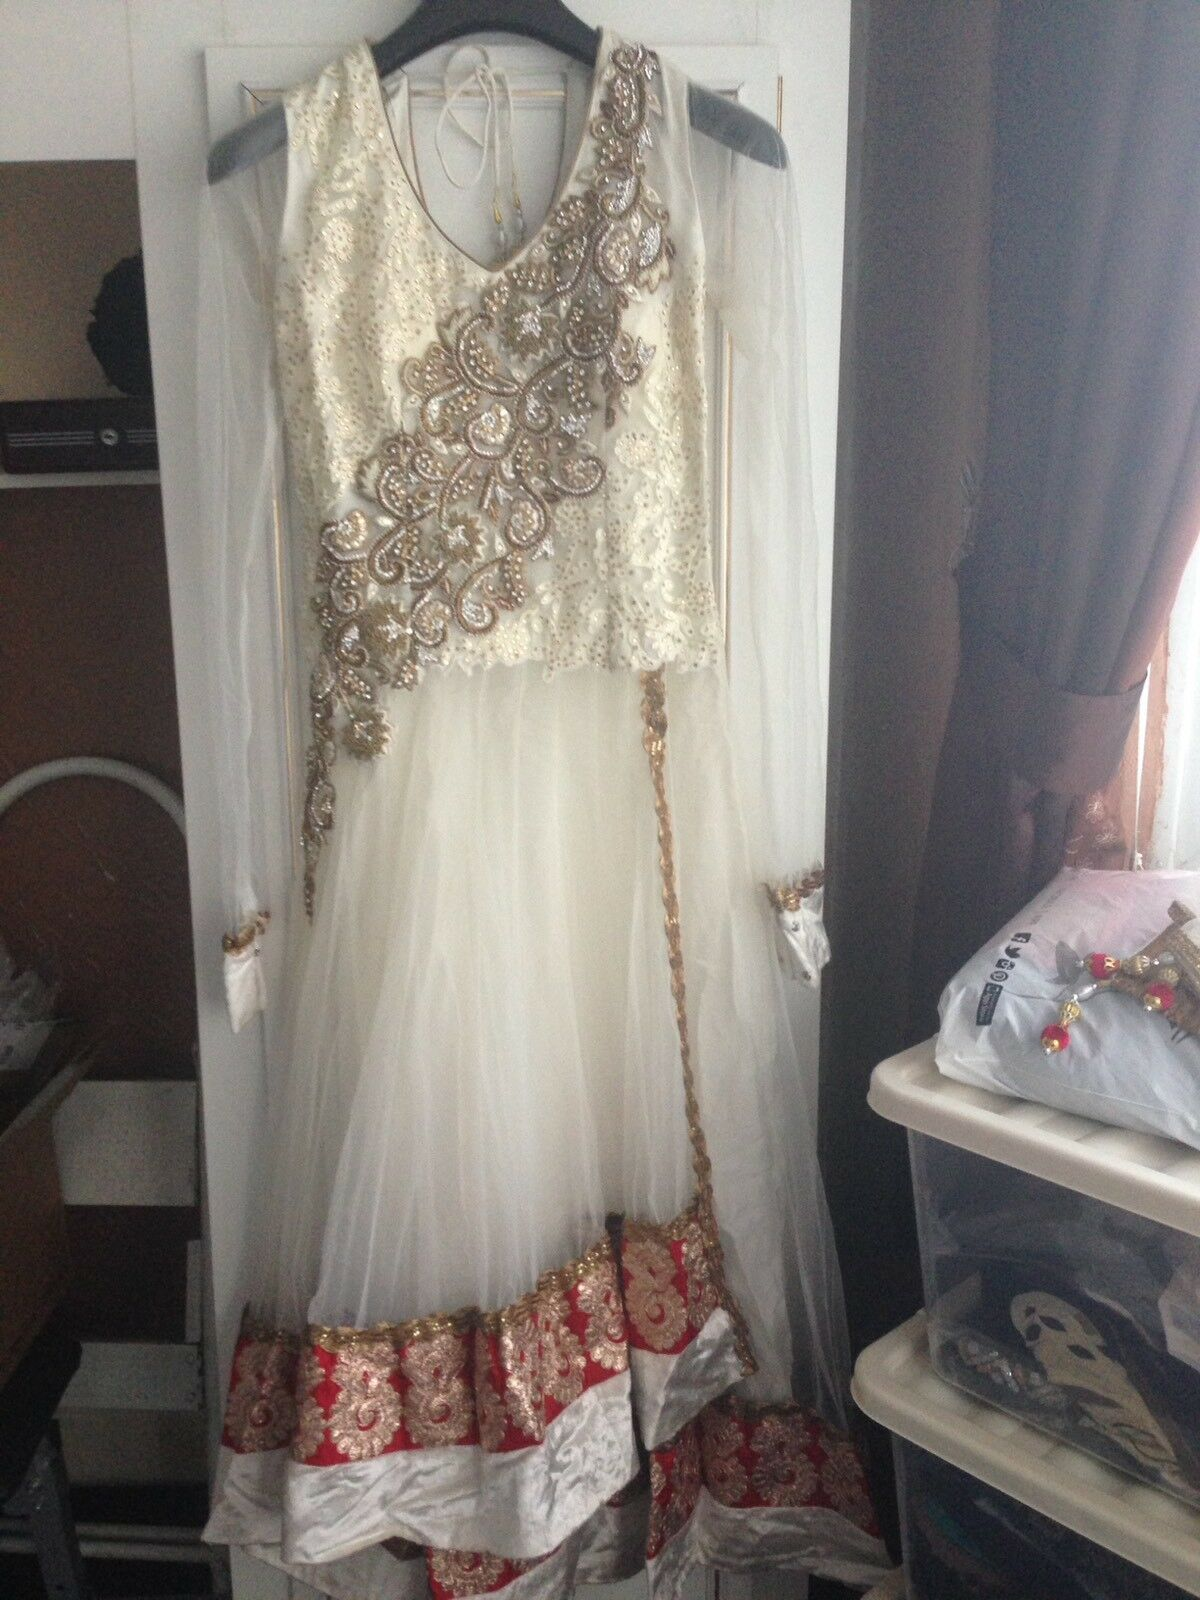 Asian Women's Ivory & Red Outfit Weddings Eid Diwali parties Size 8 10